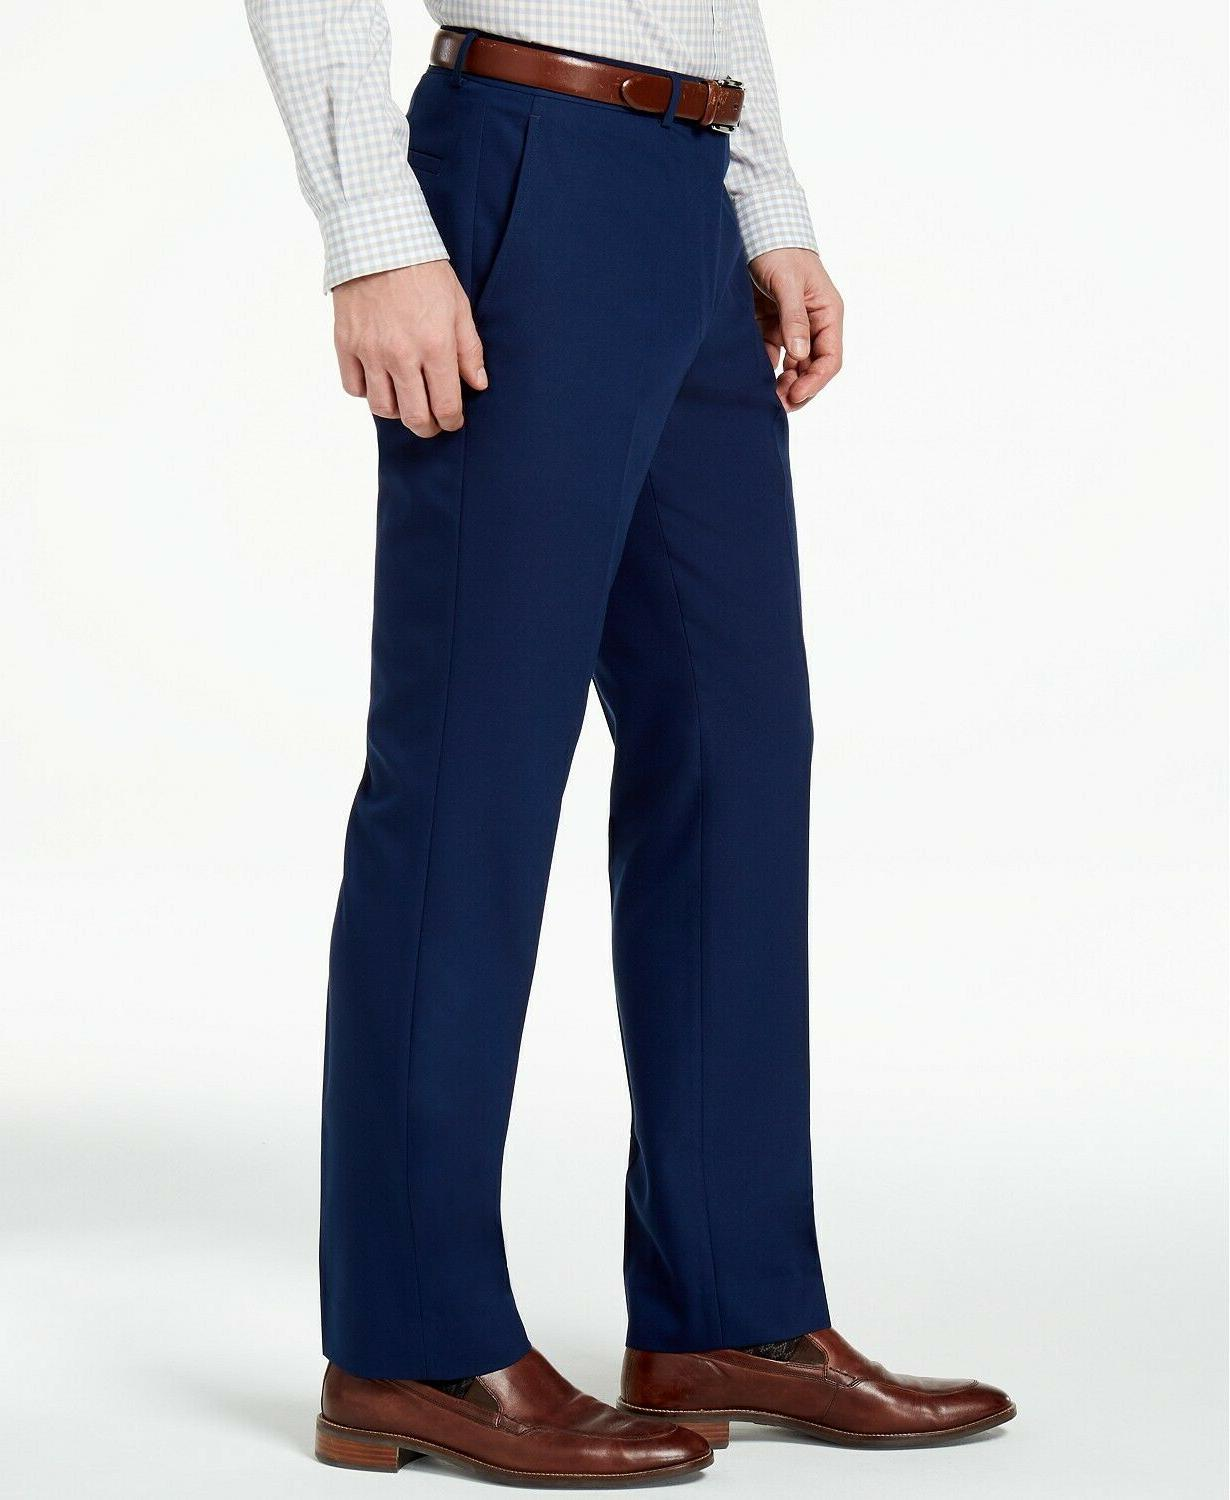 Kenneth Reaction Men's Slim-Fit Modern Blue Dress Pants $95